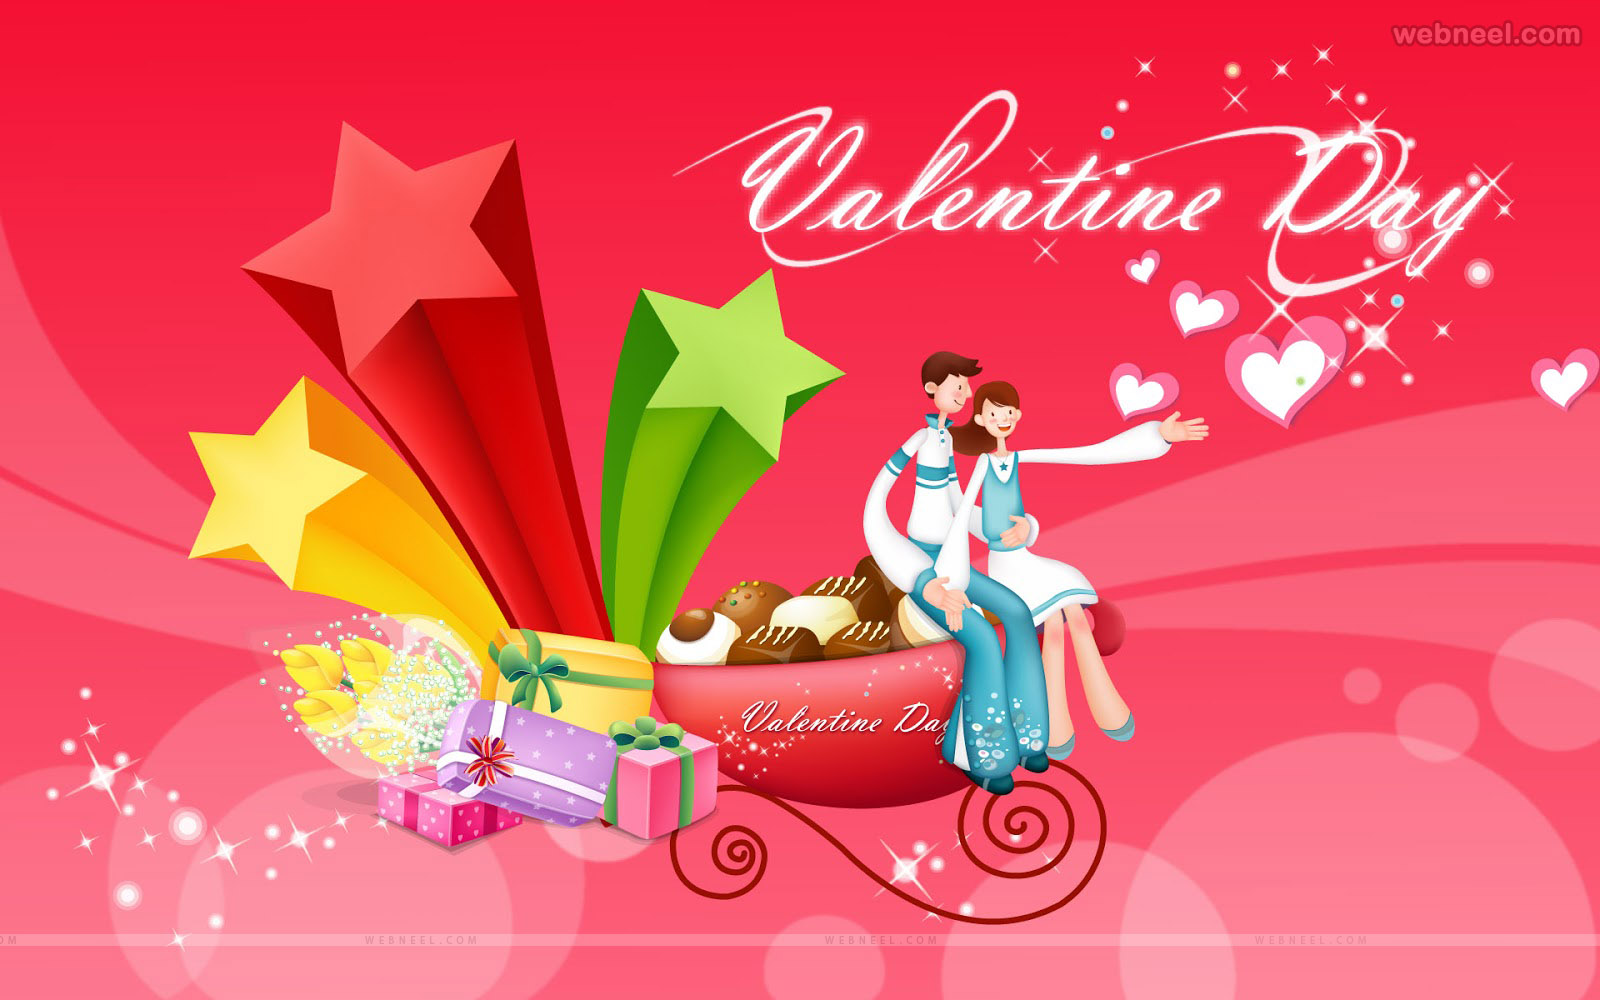 happy valentine day wallpaper 2